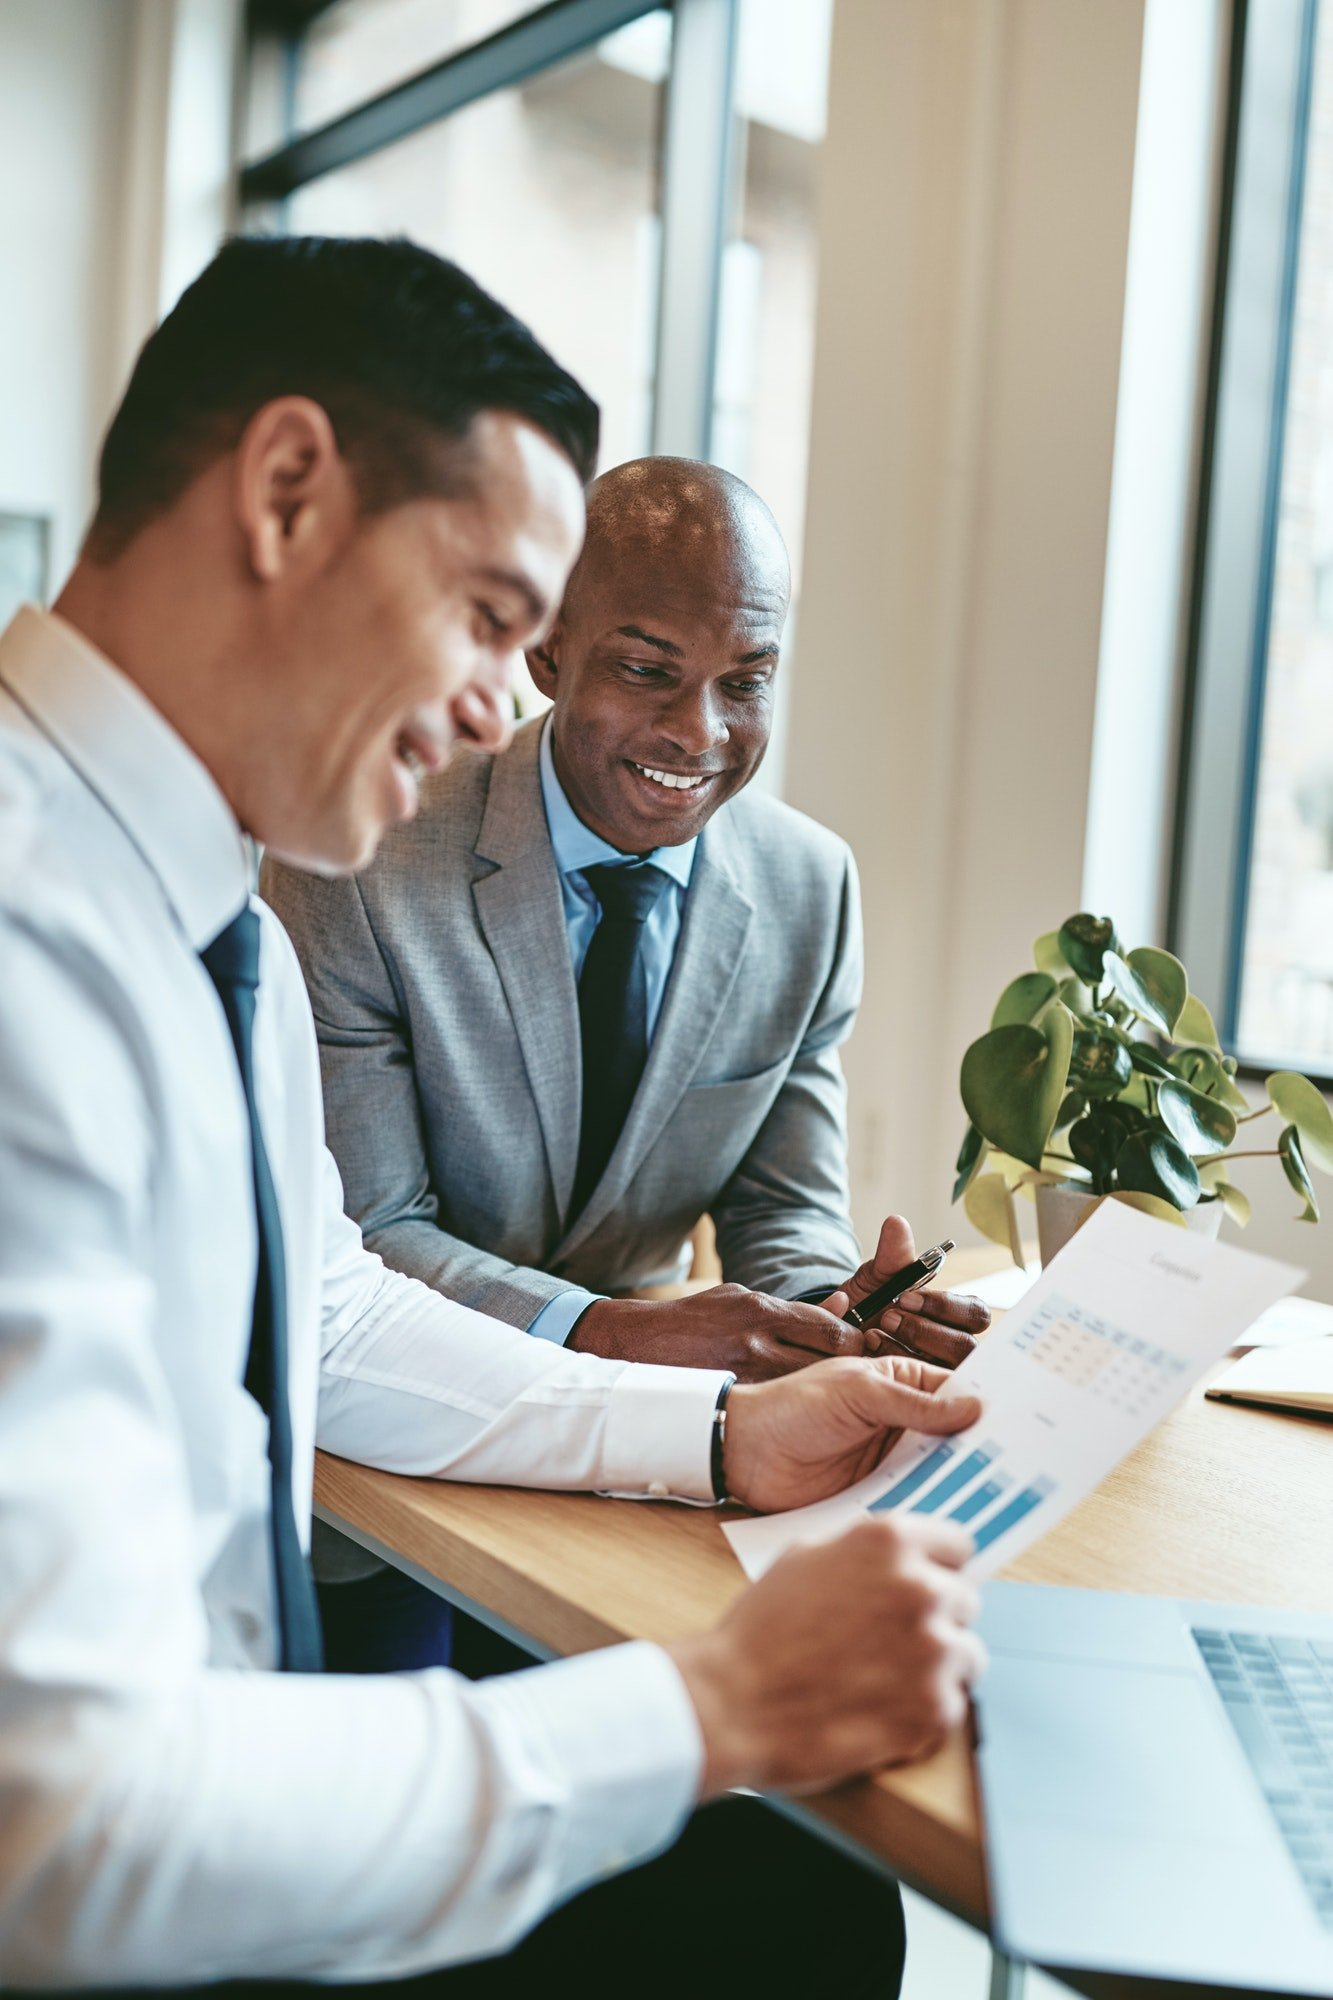 Two diverse businessmen smiling while reading paperwork in an office